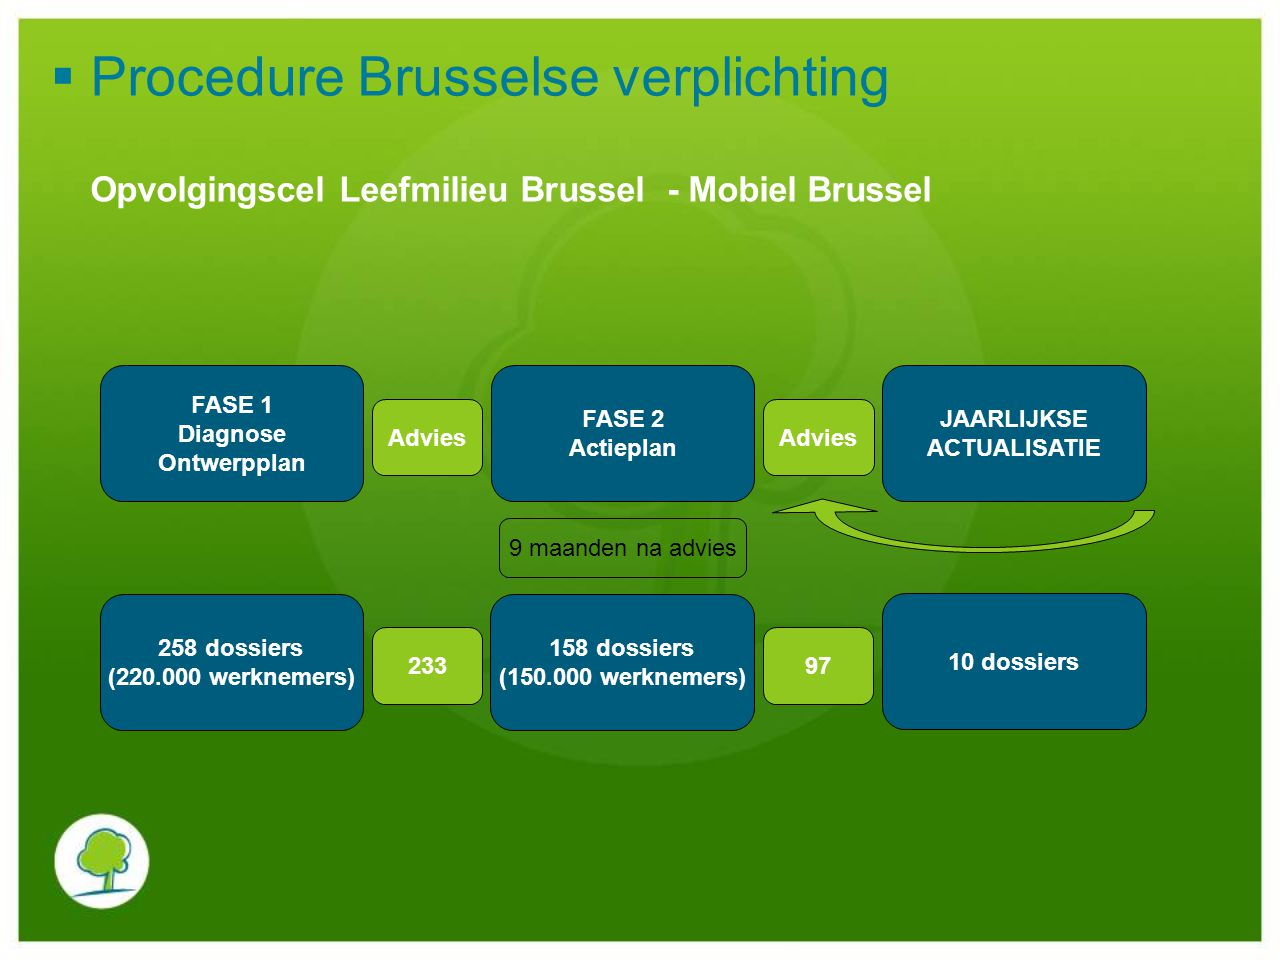 Procedure Brusselse verplichting